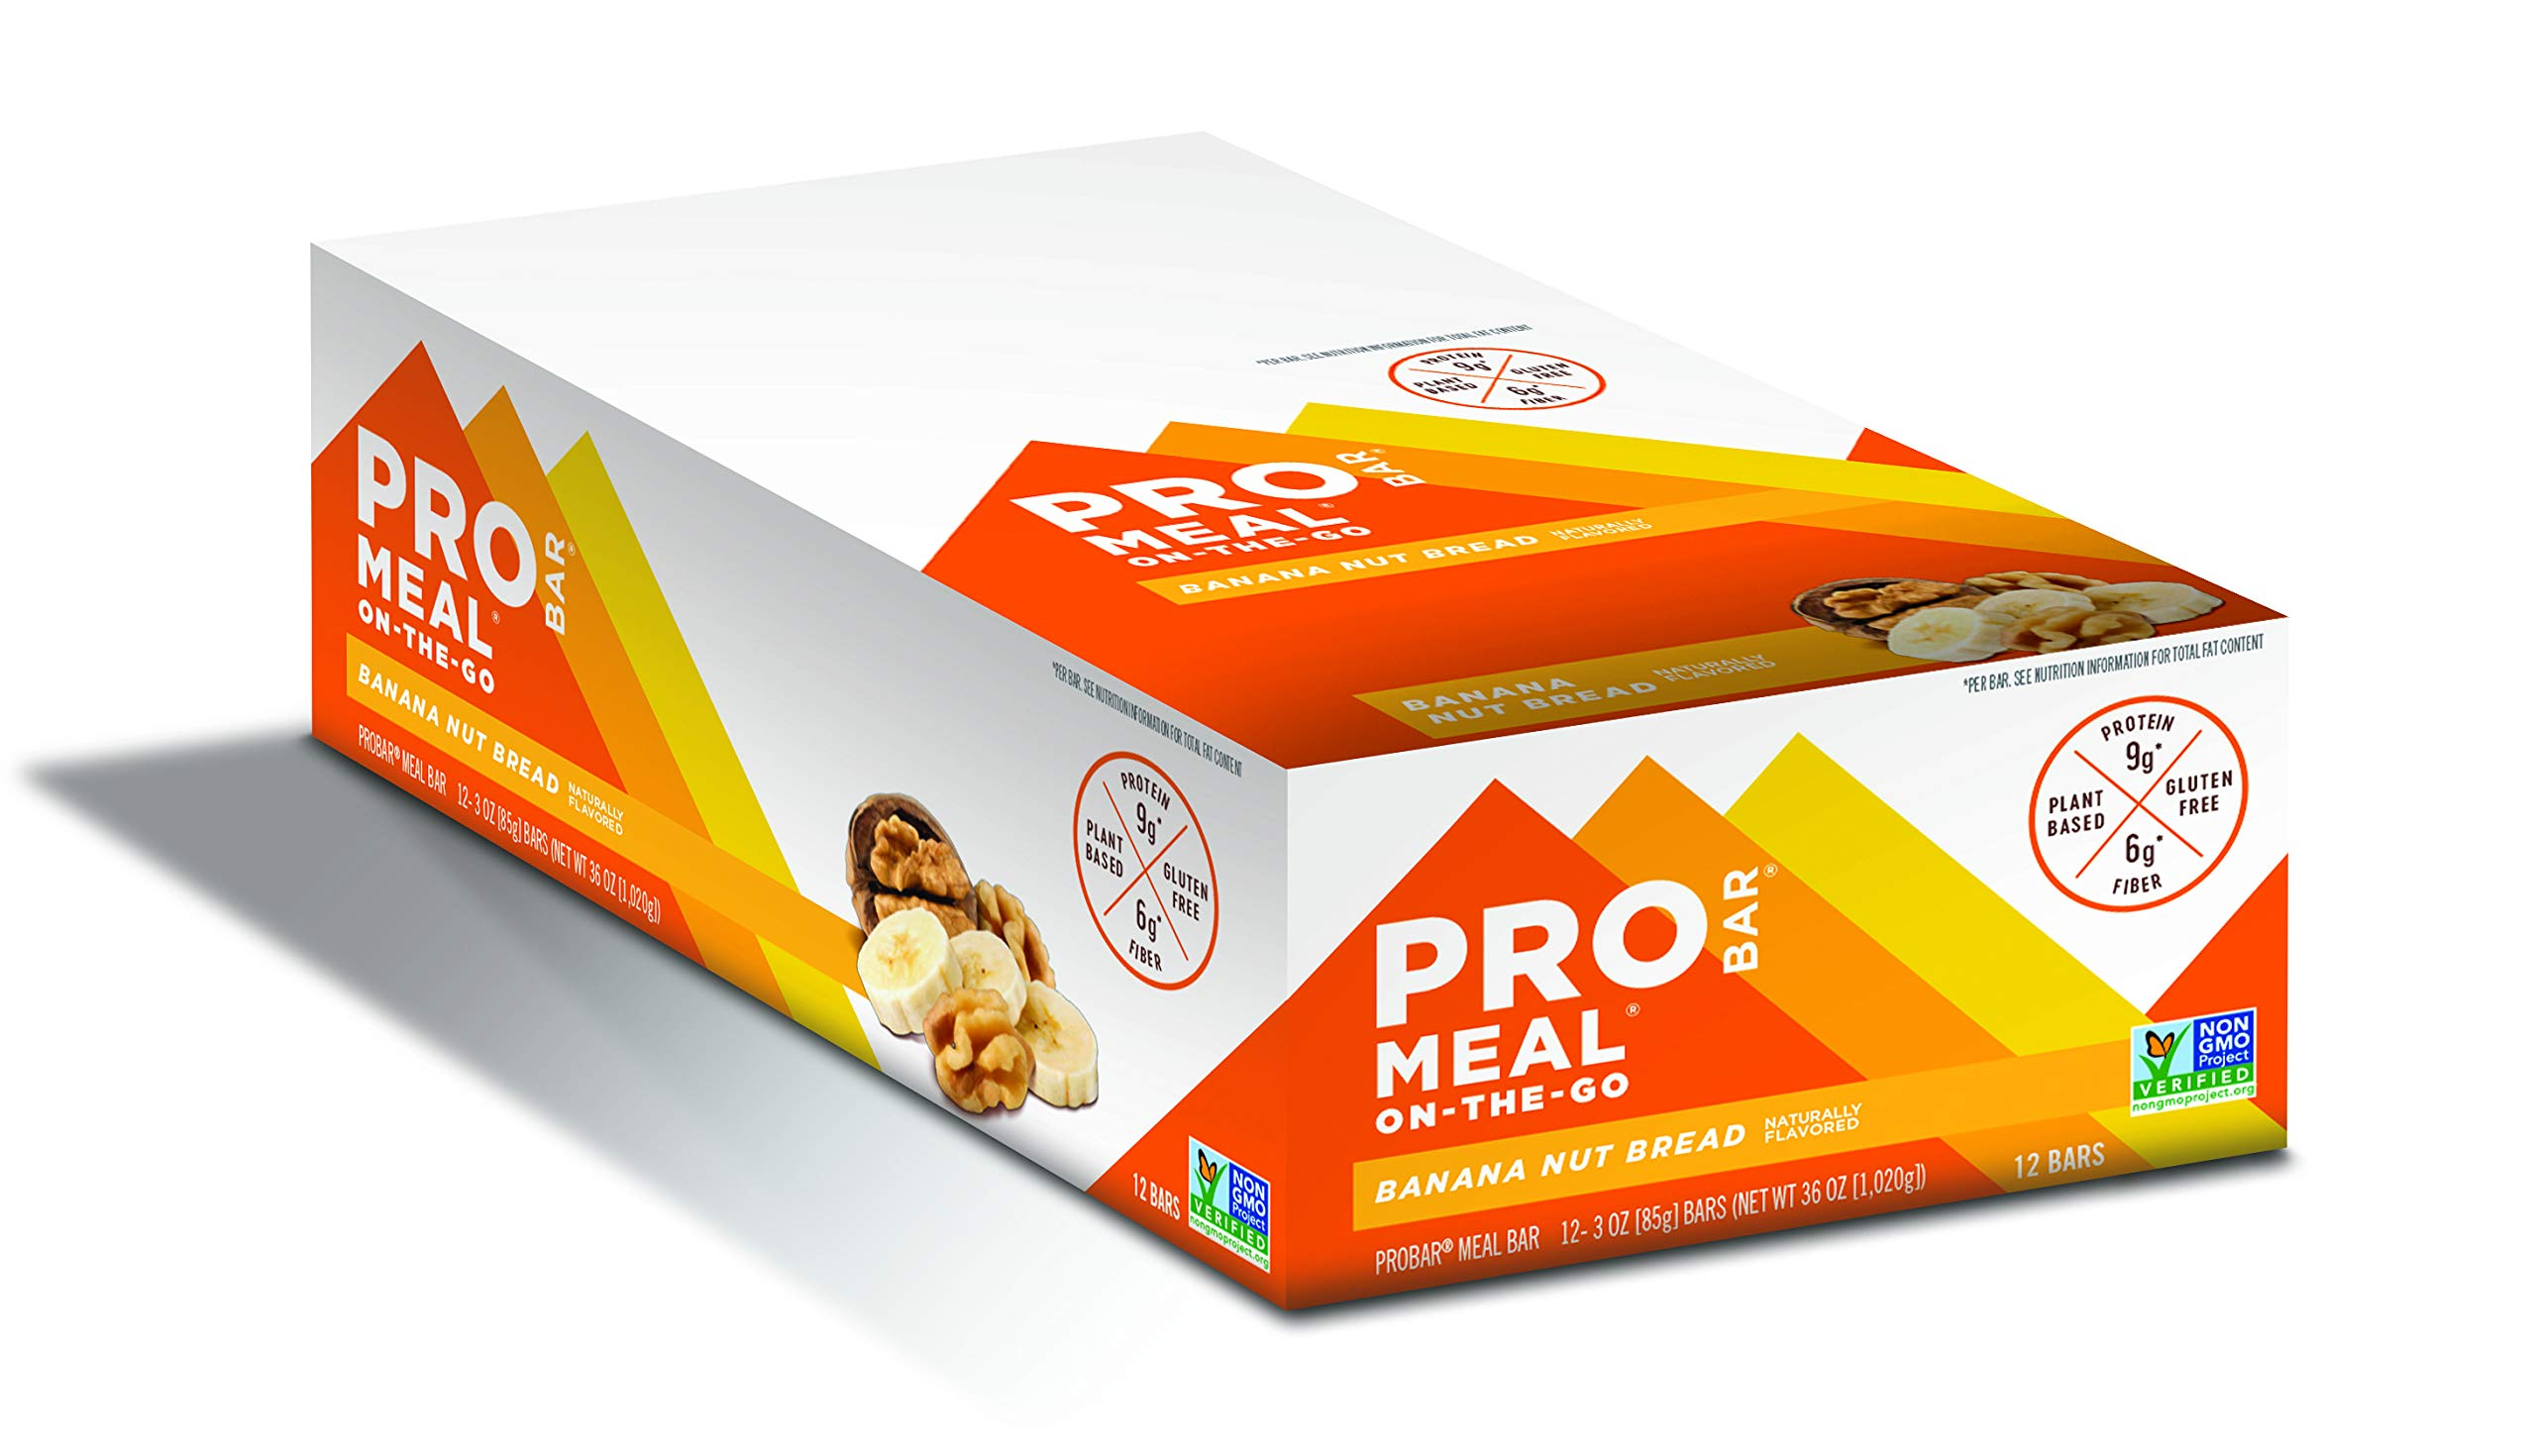 PROBAR - Meal Bar, Banana Nut Bread, Non-GMO, Gluten-Free, Certified Organic, Healthy, Plant-Based Whole Food Ingredients, Natural Energy (12 Count)